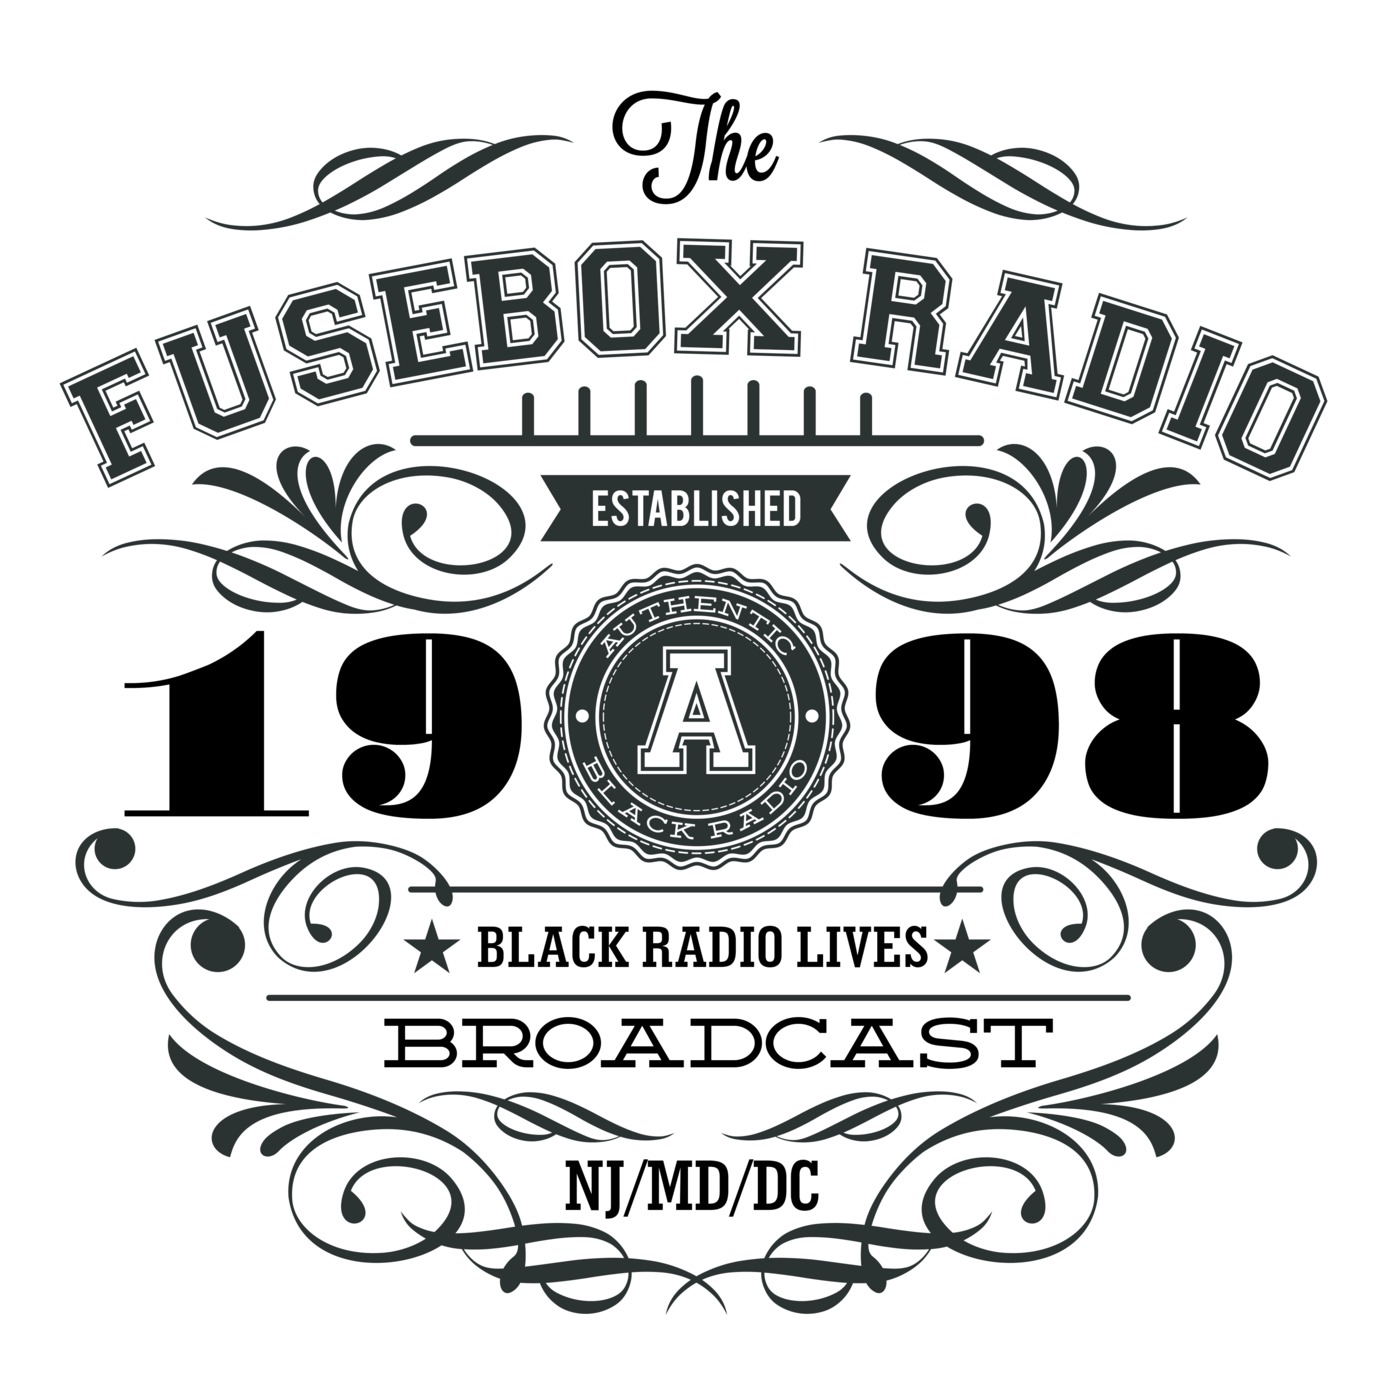 Fusebox Radio 564 Fuseboxradio Mixtape Dj Fusion 4th Of July D5 Fuse Box Location Heres A Brand New Hip Hop Soul As Part Broadcast Mini Podcast Episode For Folks To Check Out This Independence Day